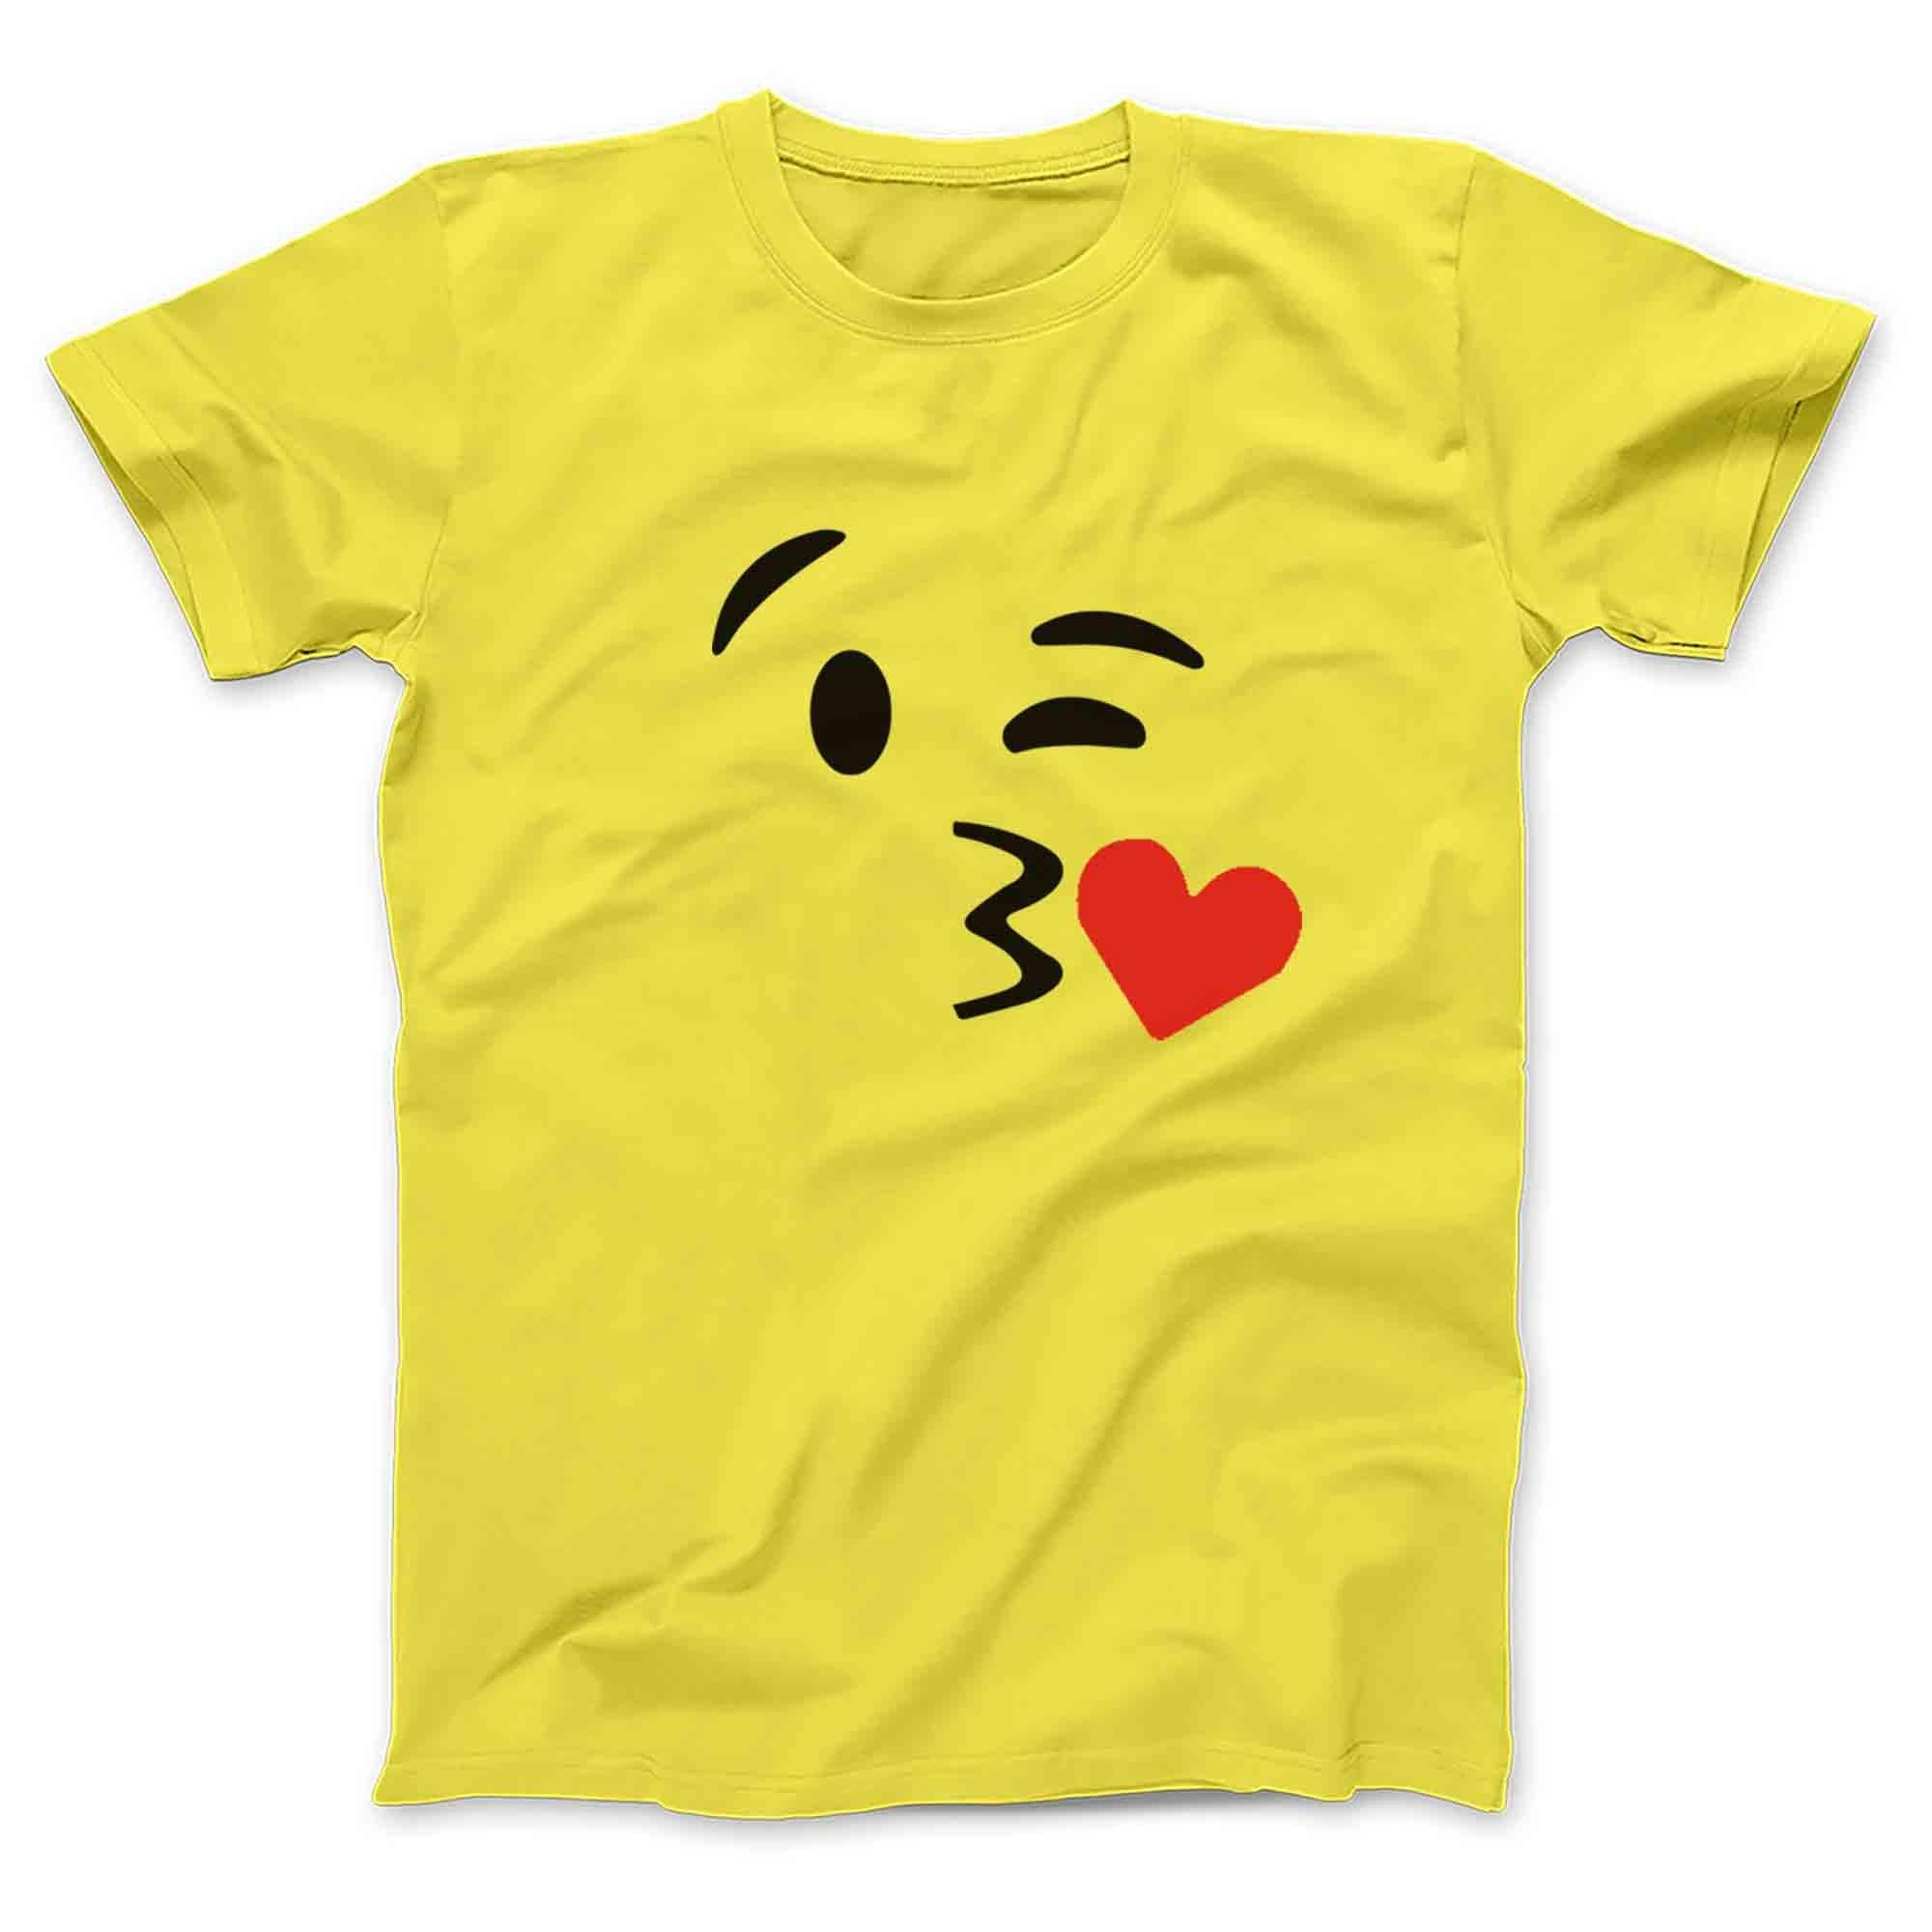 Smiley faces wink heart emoji - size l